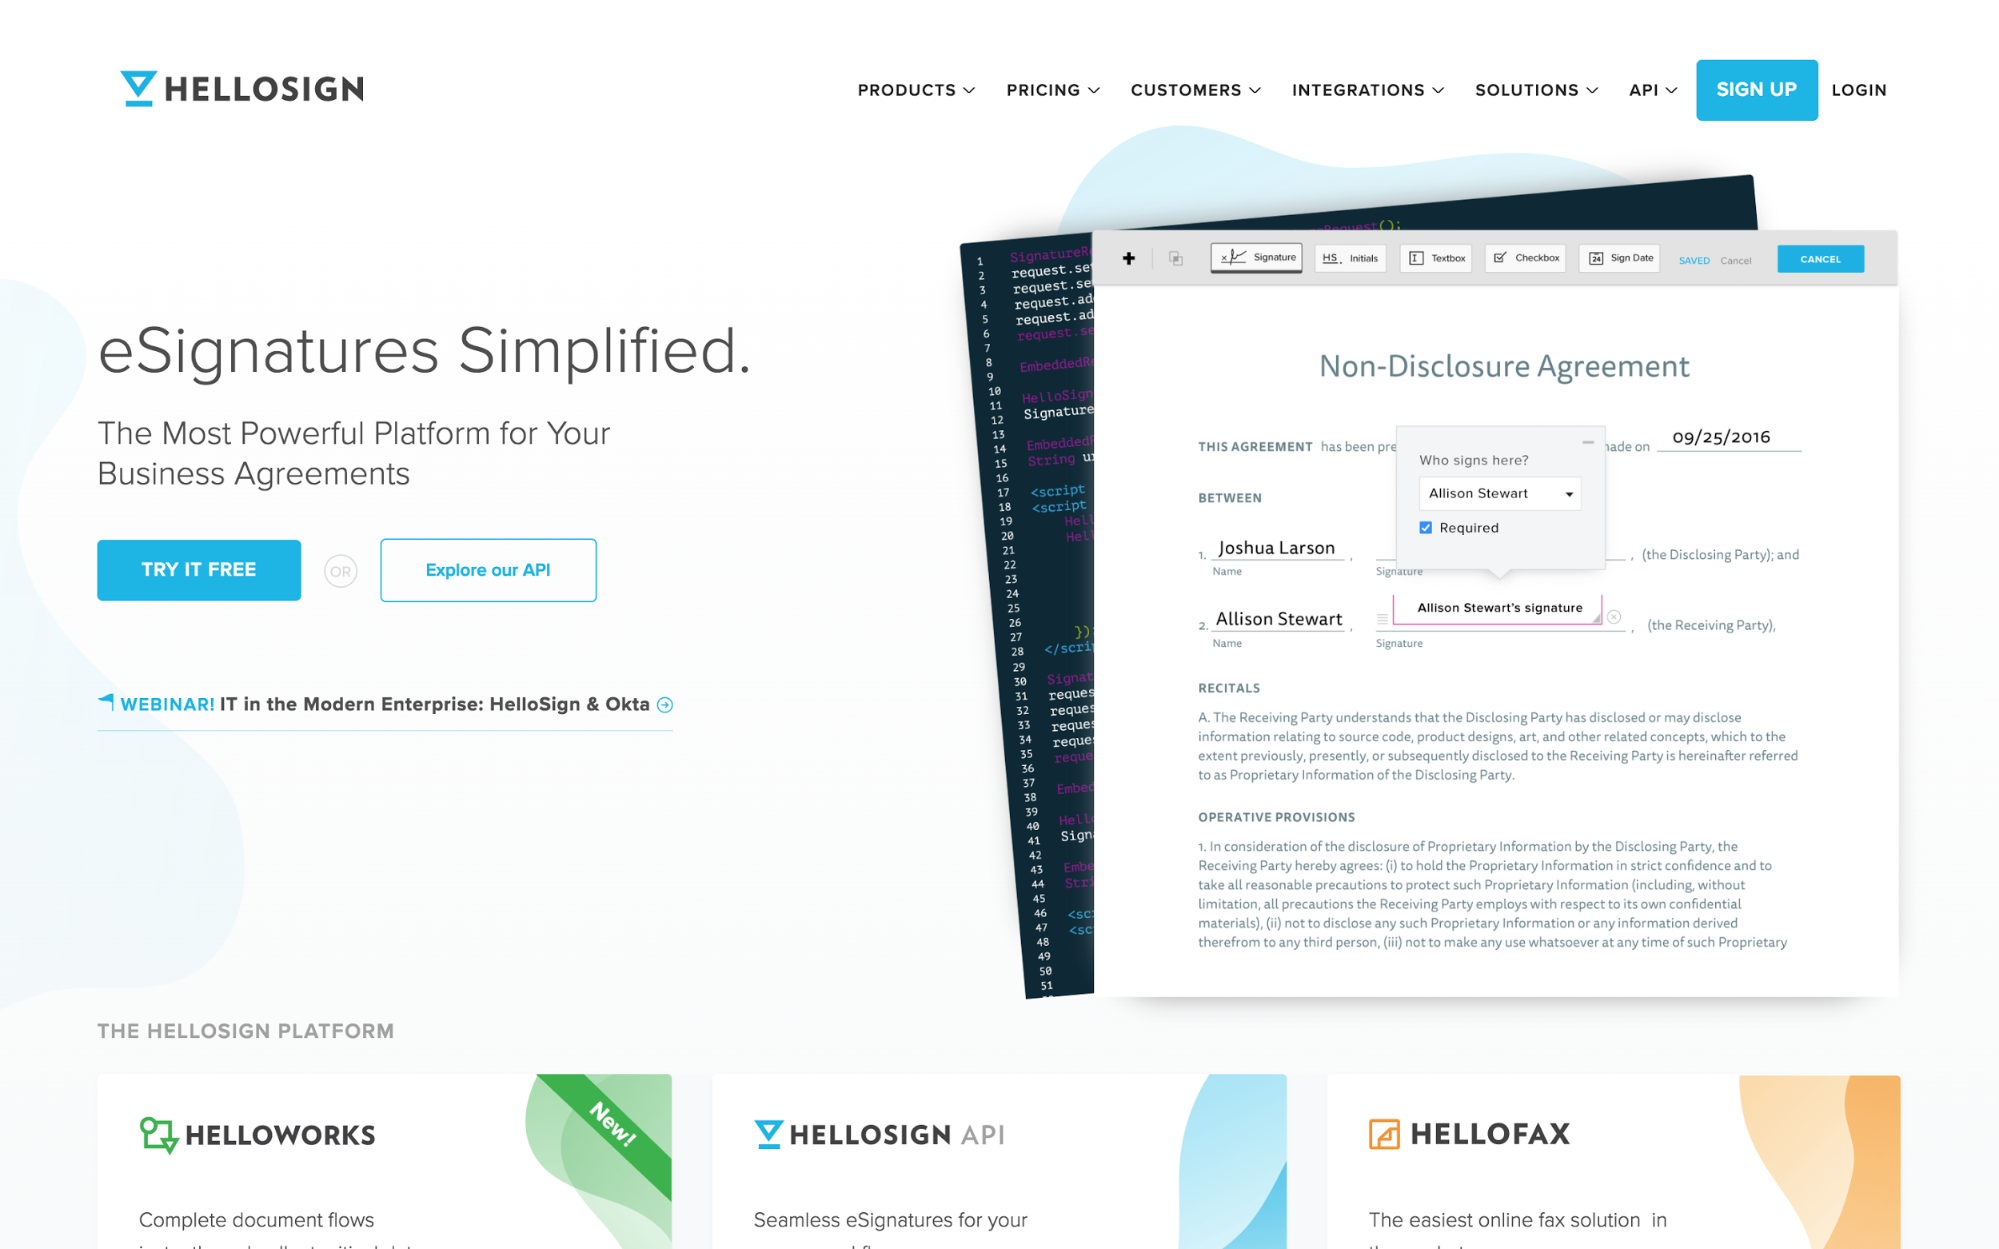 HelloSign's homepage